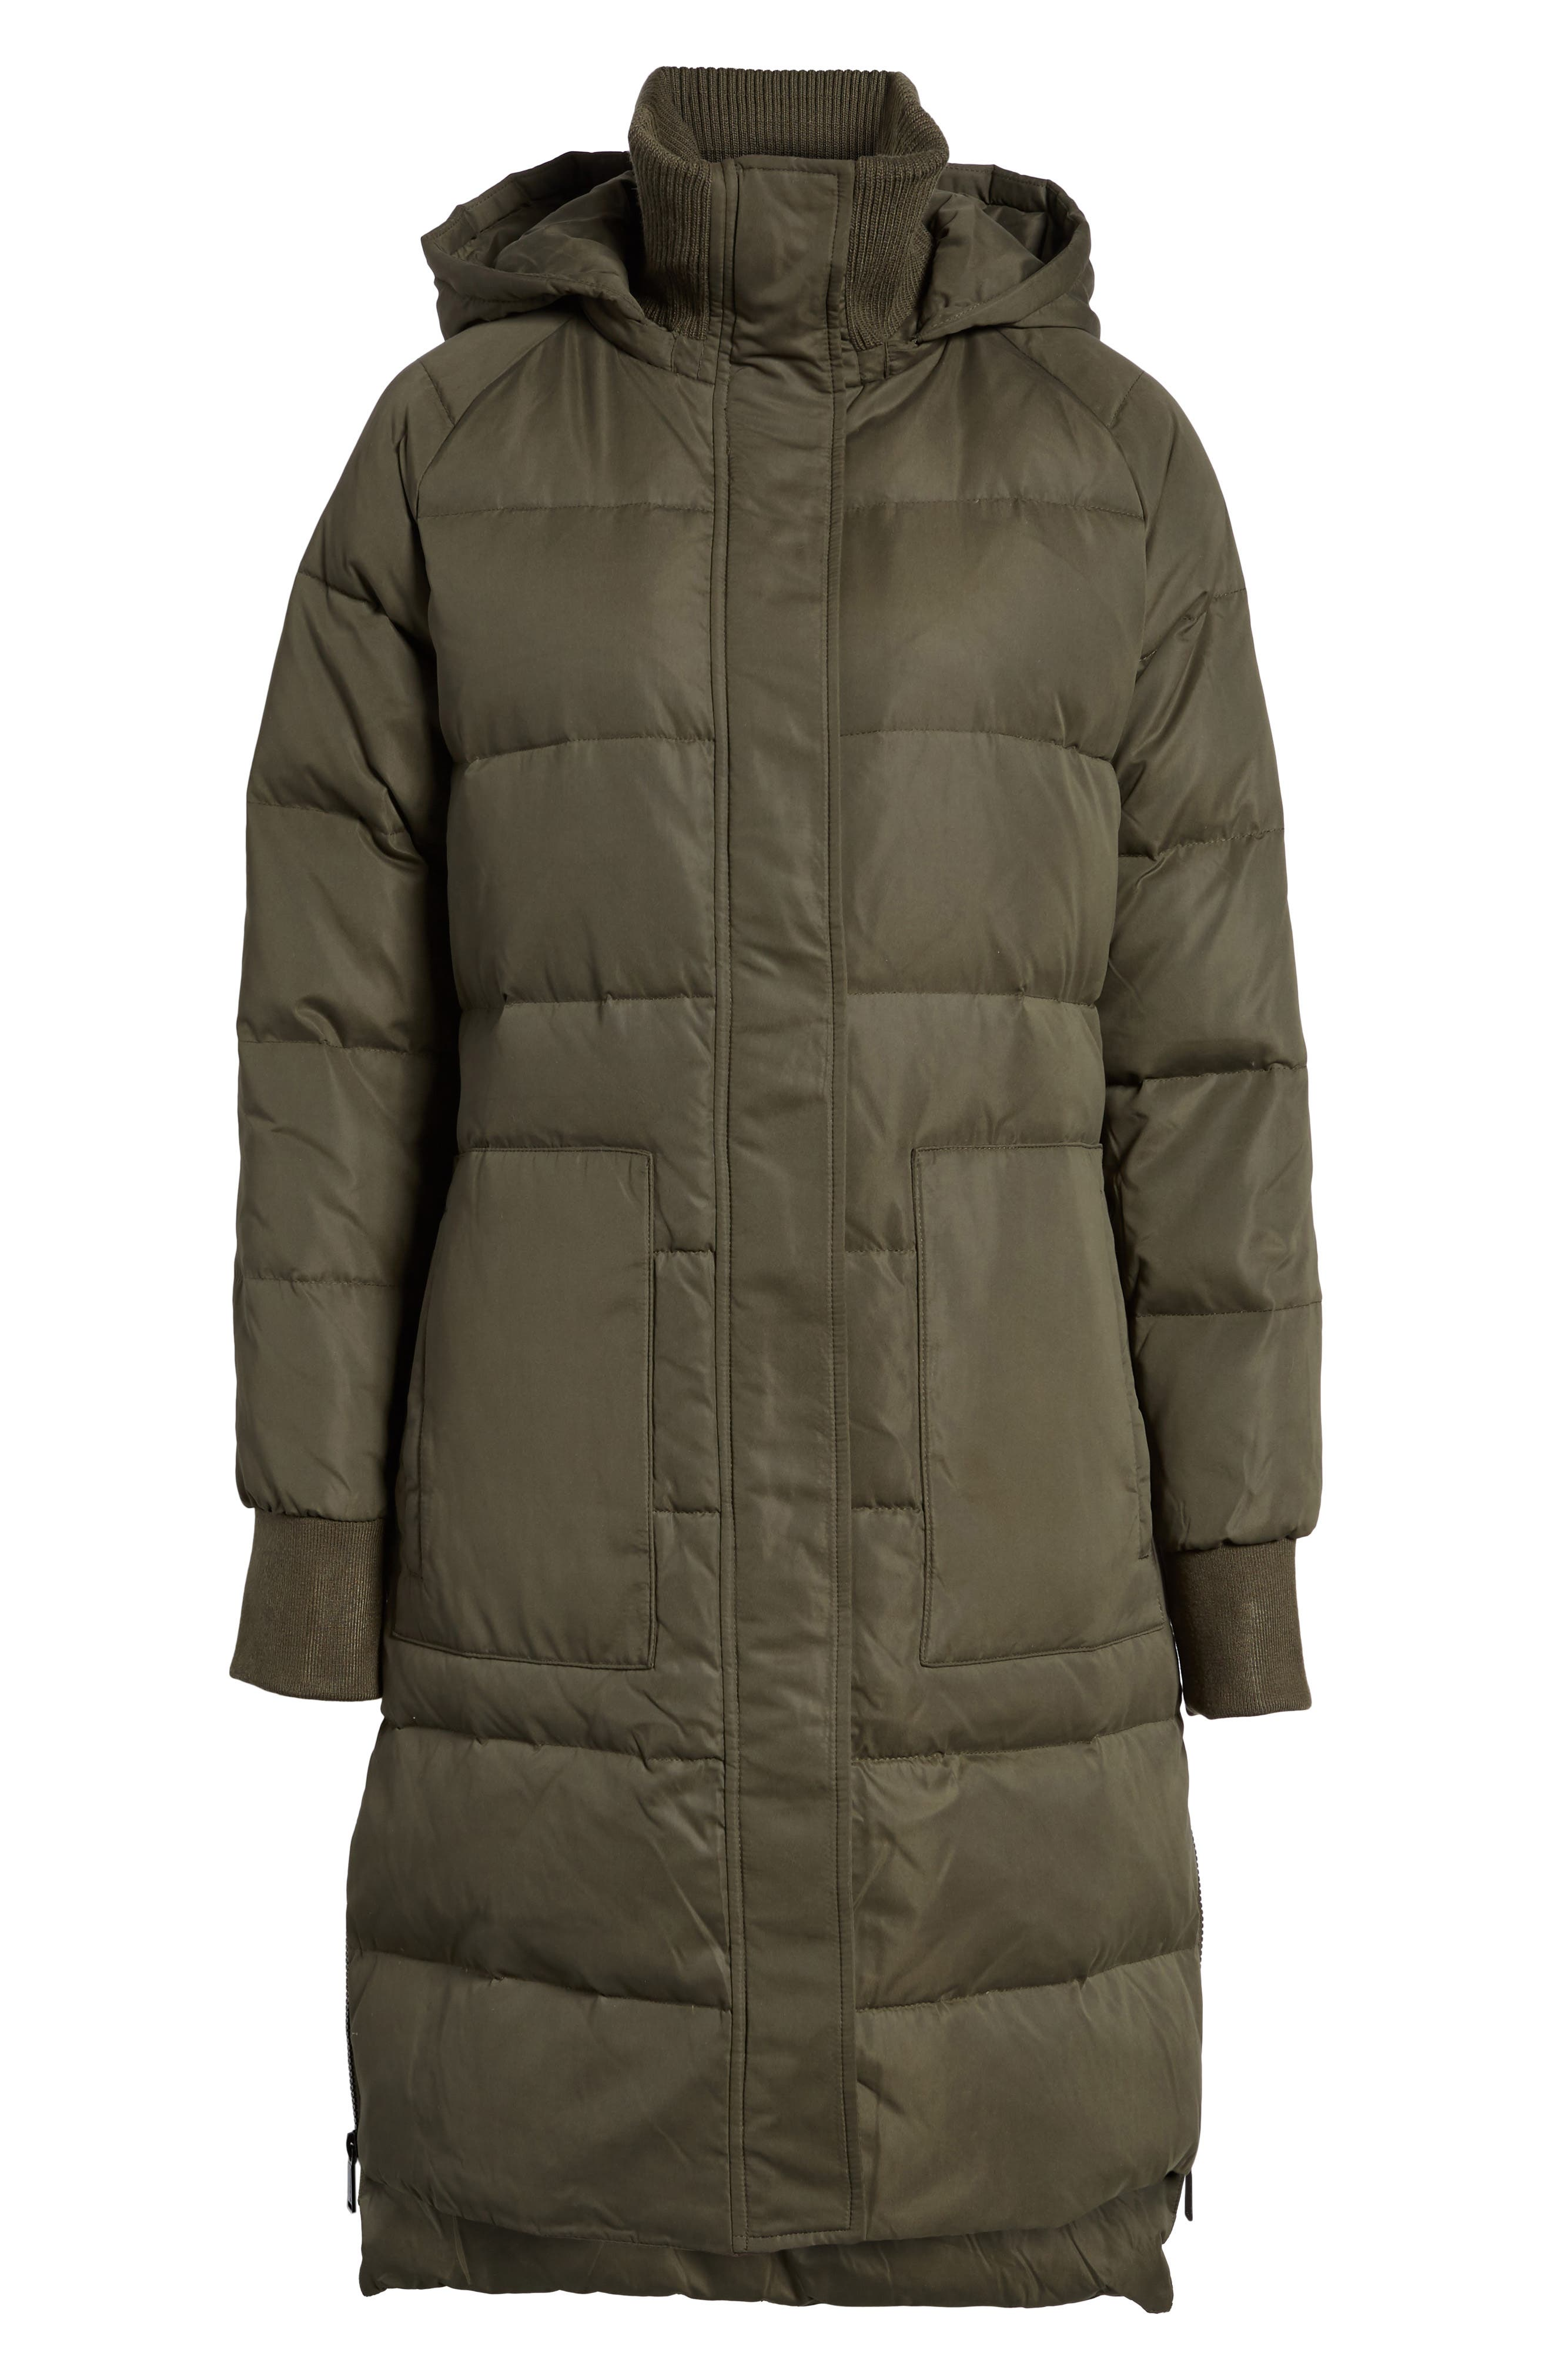 Down & Feather Fill Puffer Jacket,                             Main thumbnail 1, color,                             Army